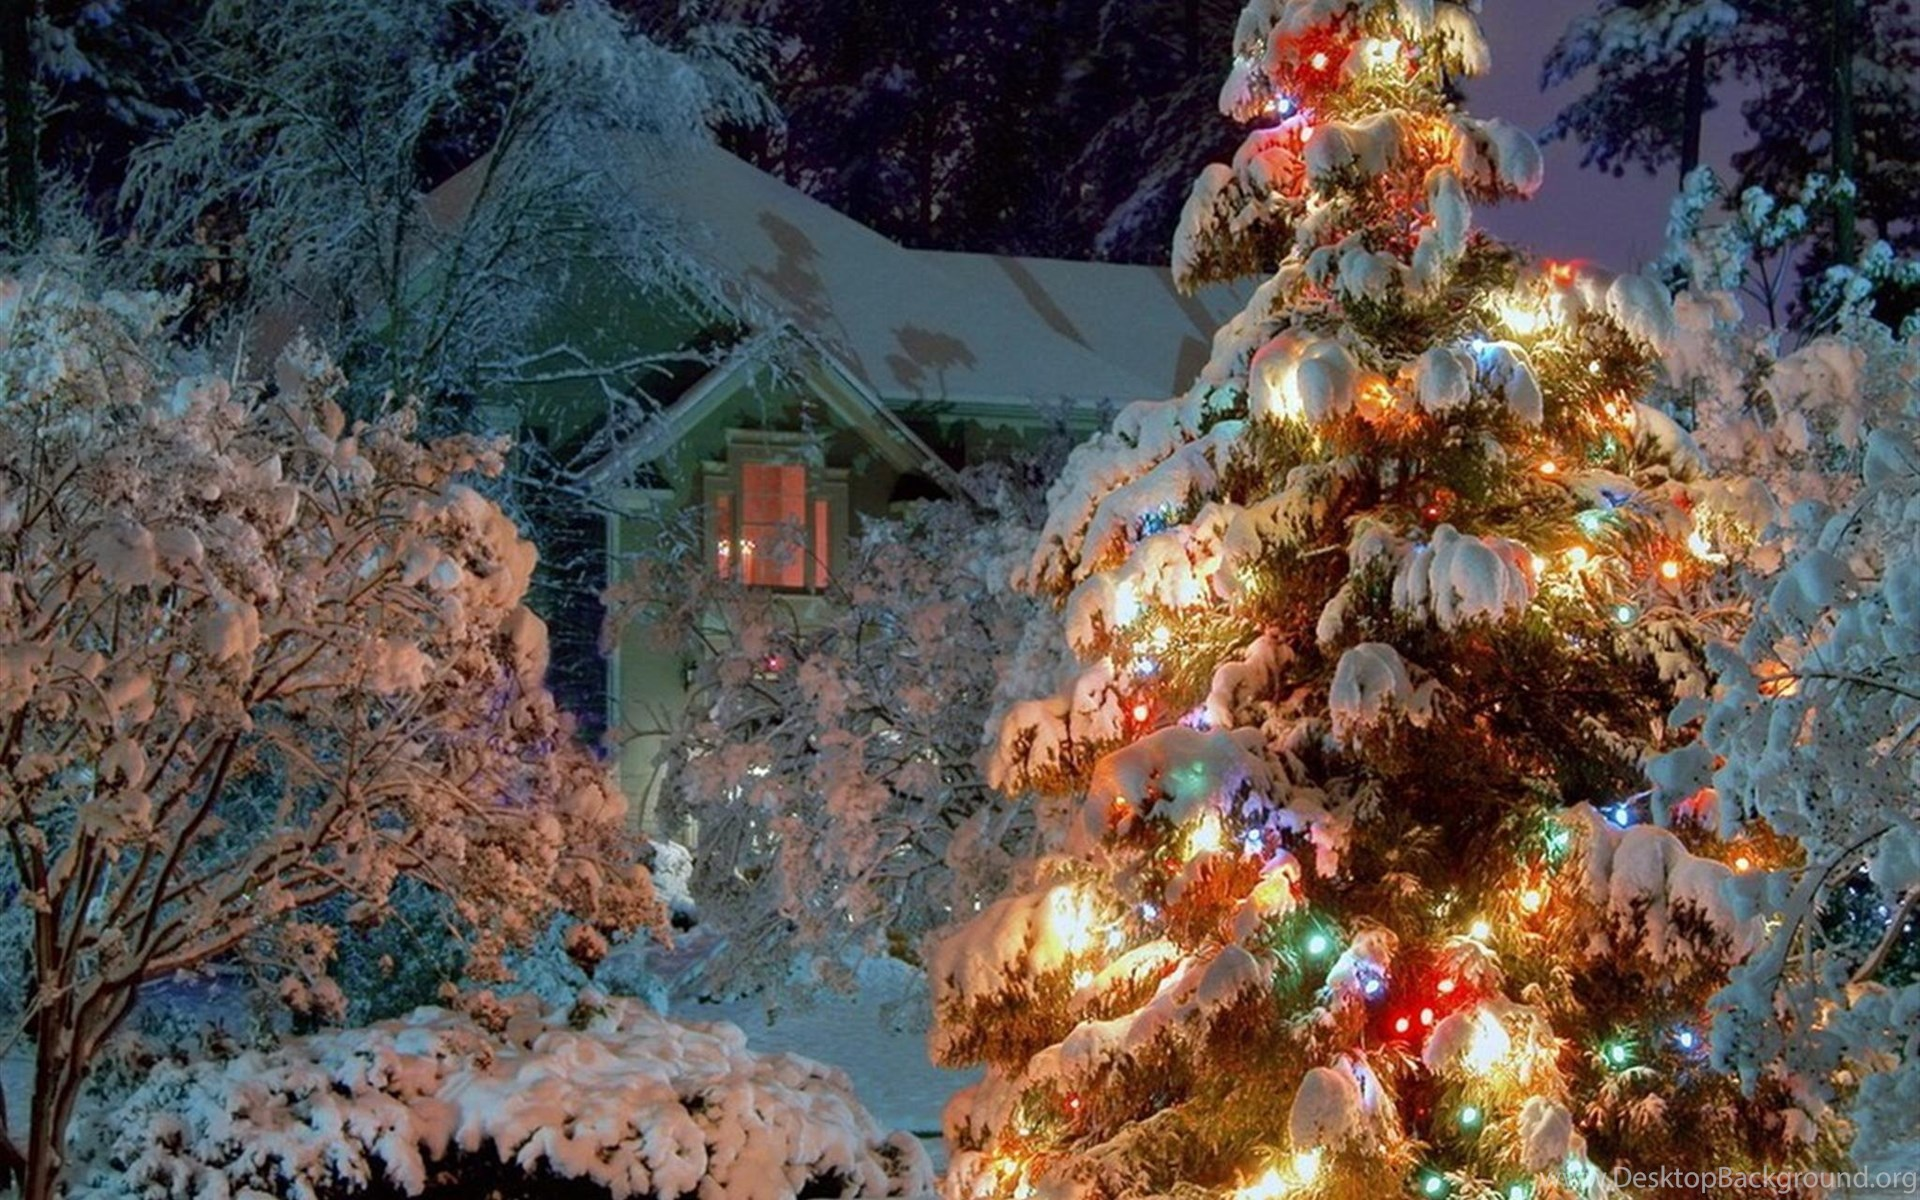 Christmas Ipad Backgrounds Free: Gallery For Hd Christmas Wallpapers Ipad Desktop Background